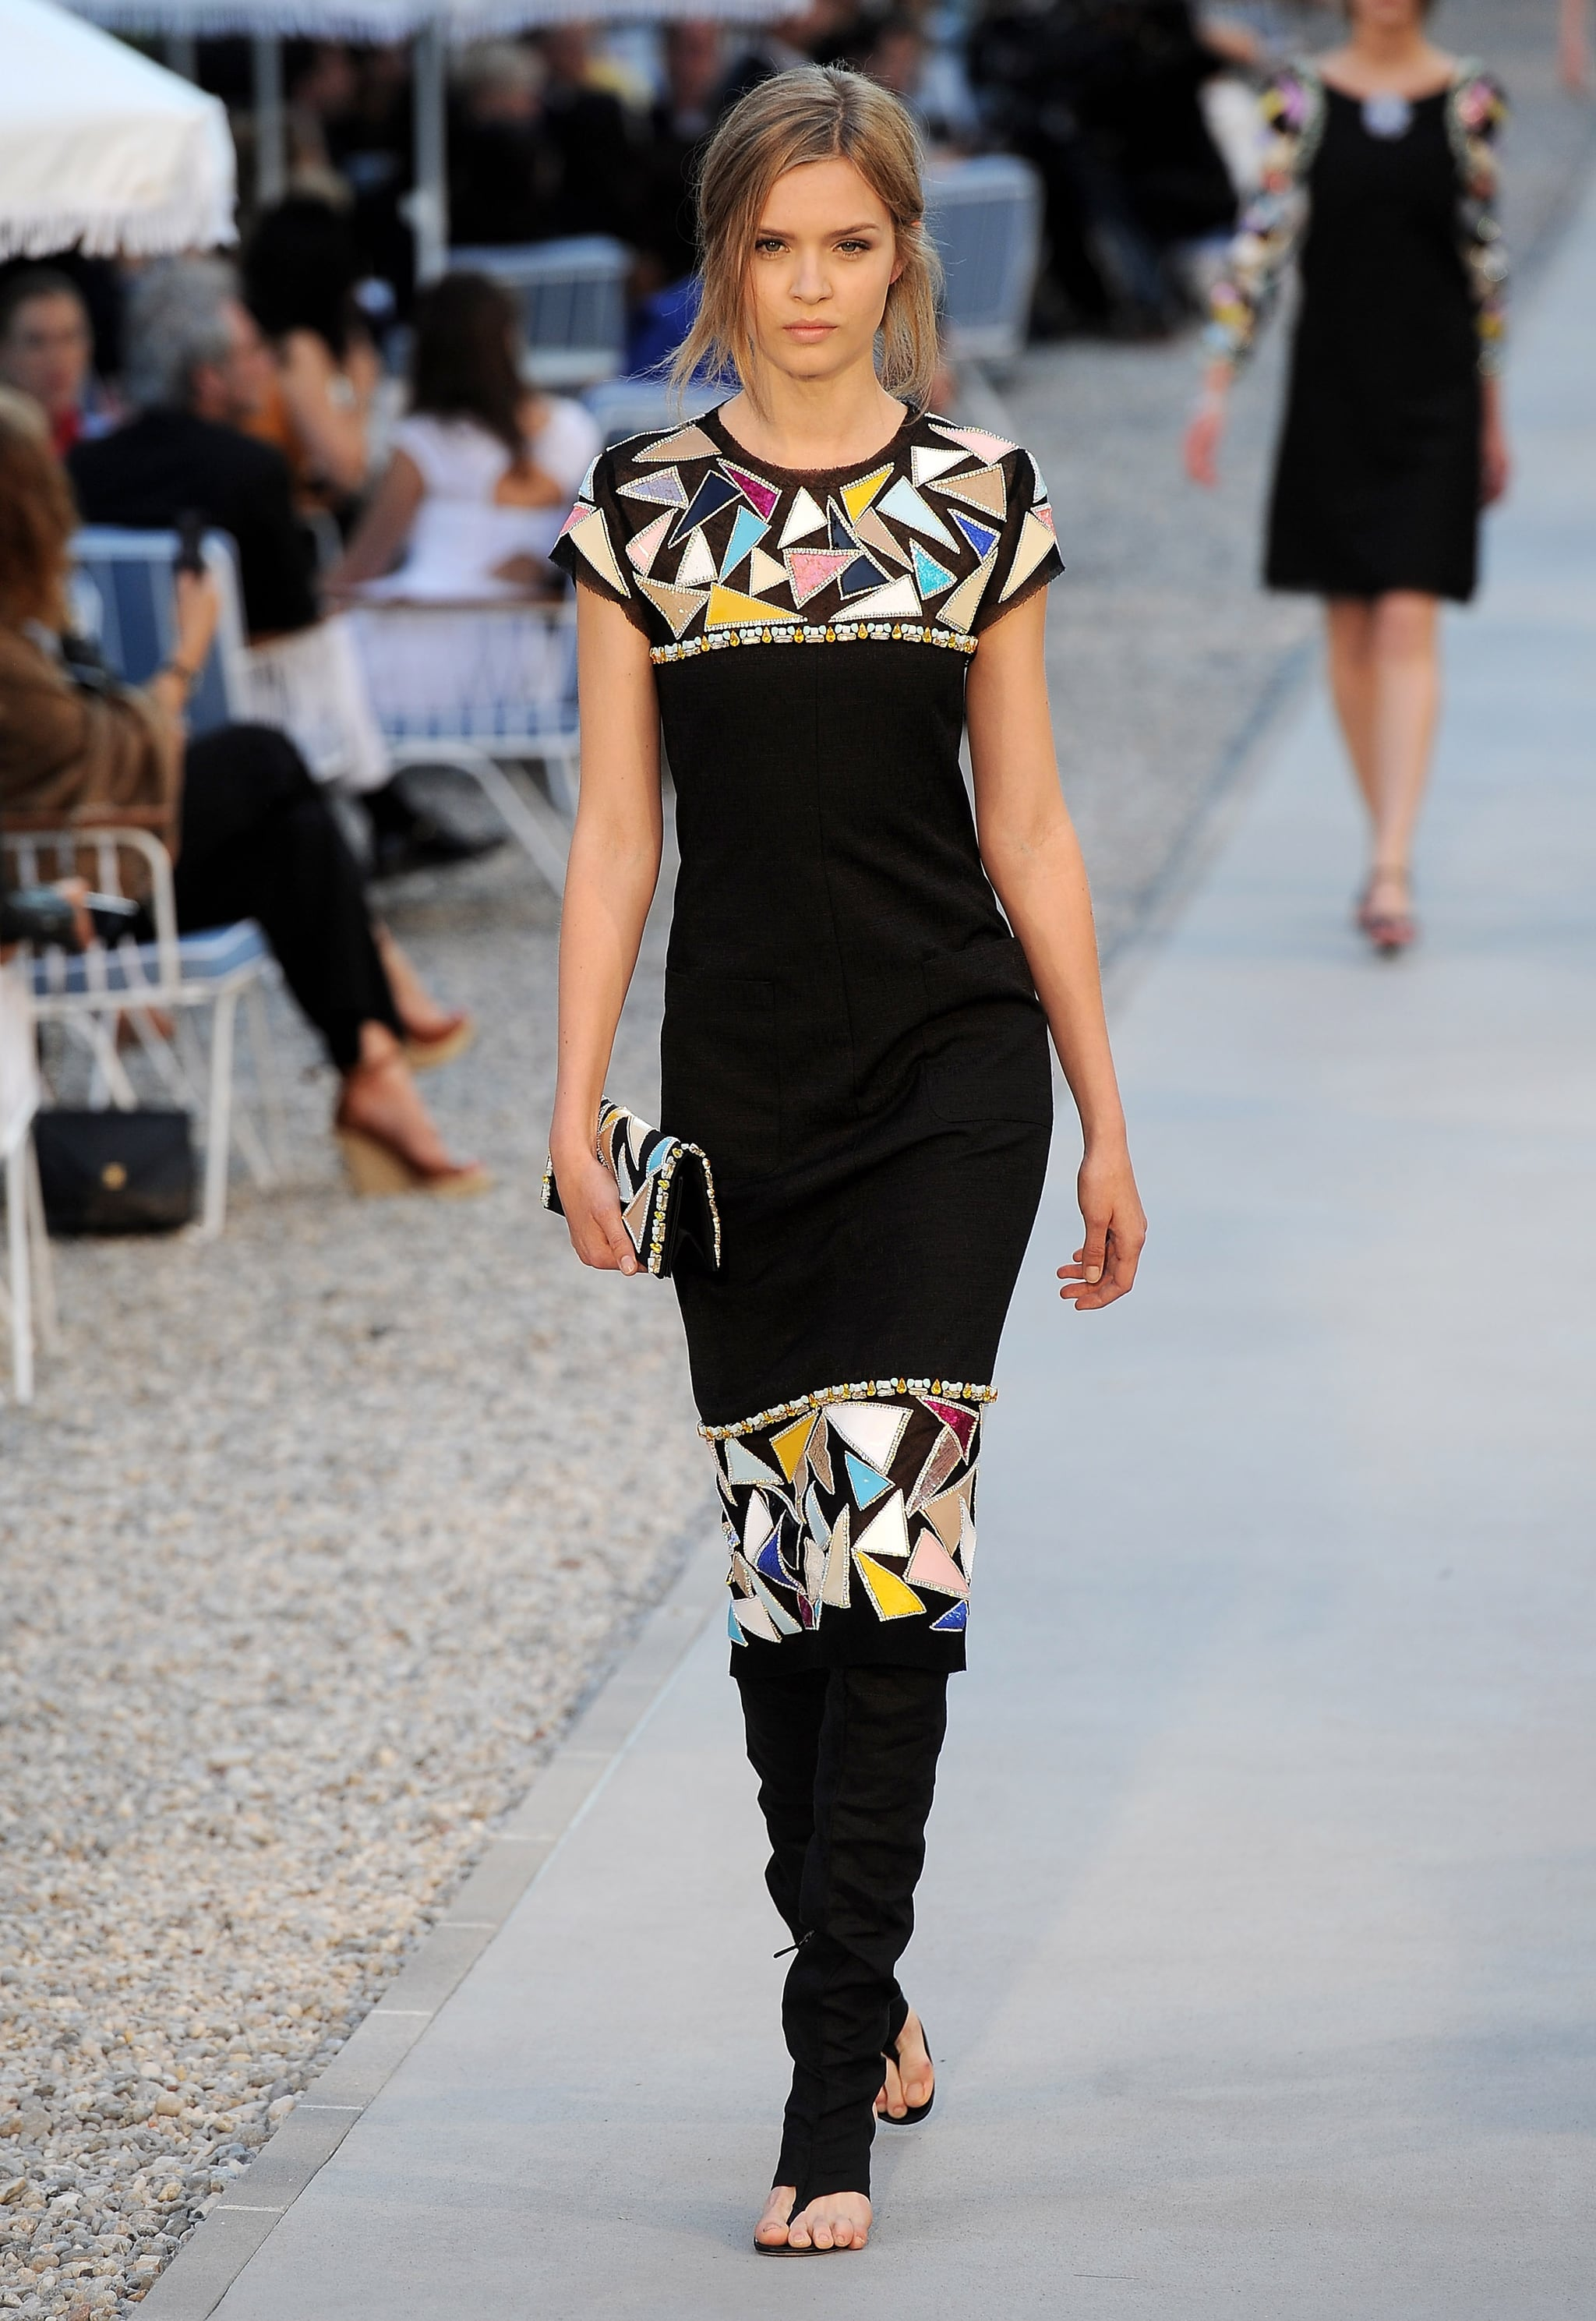 Runway Pictures of the Chanel Cruise Collection 2011/2012 ...